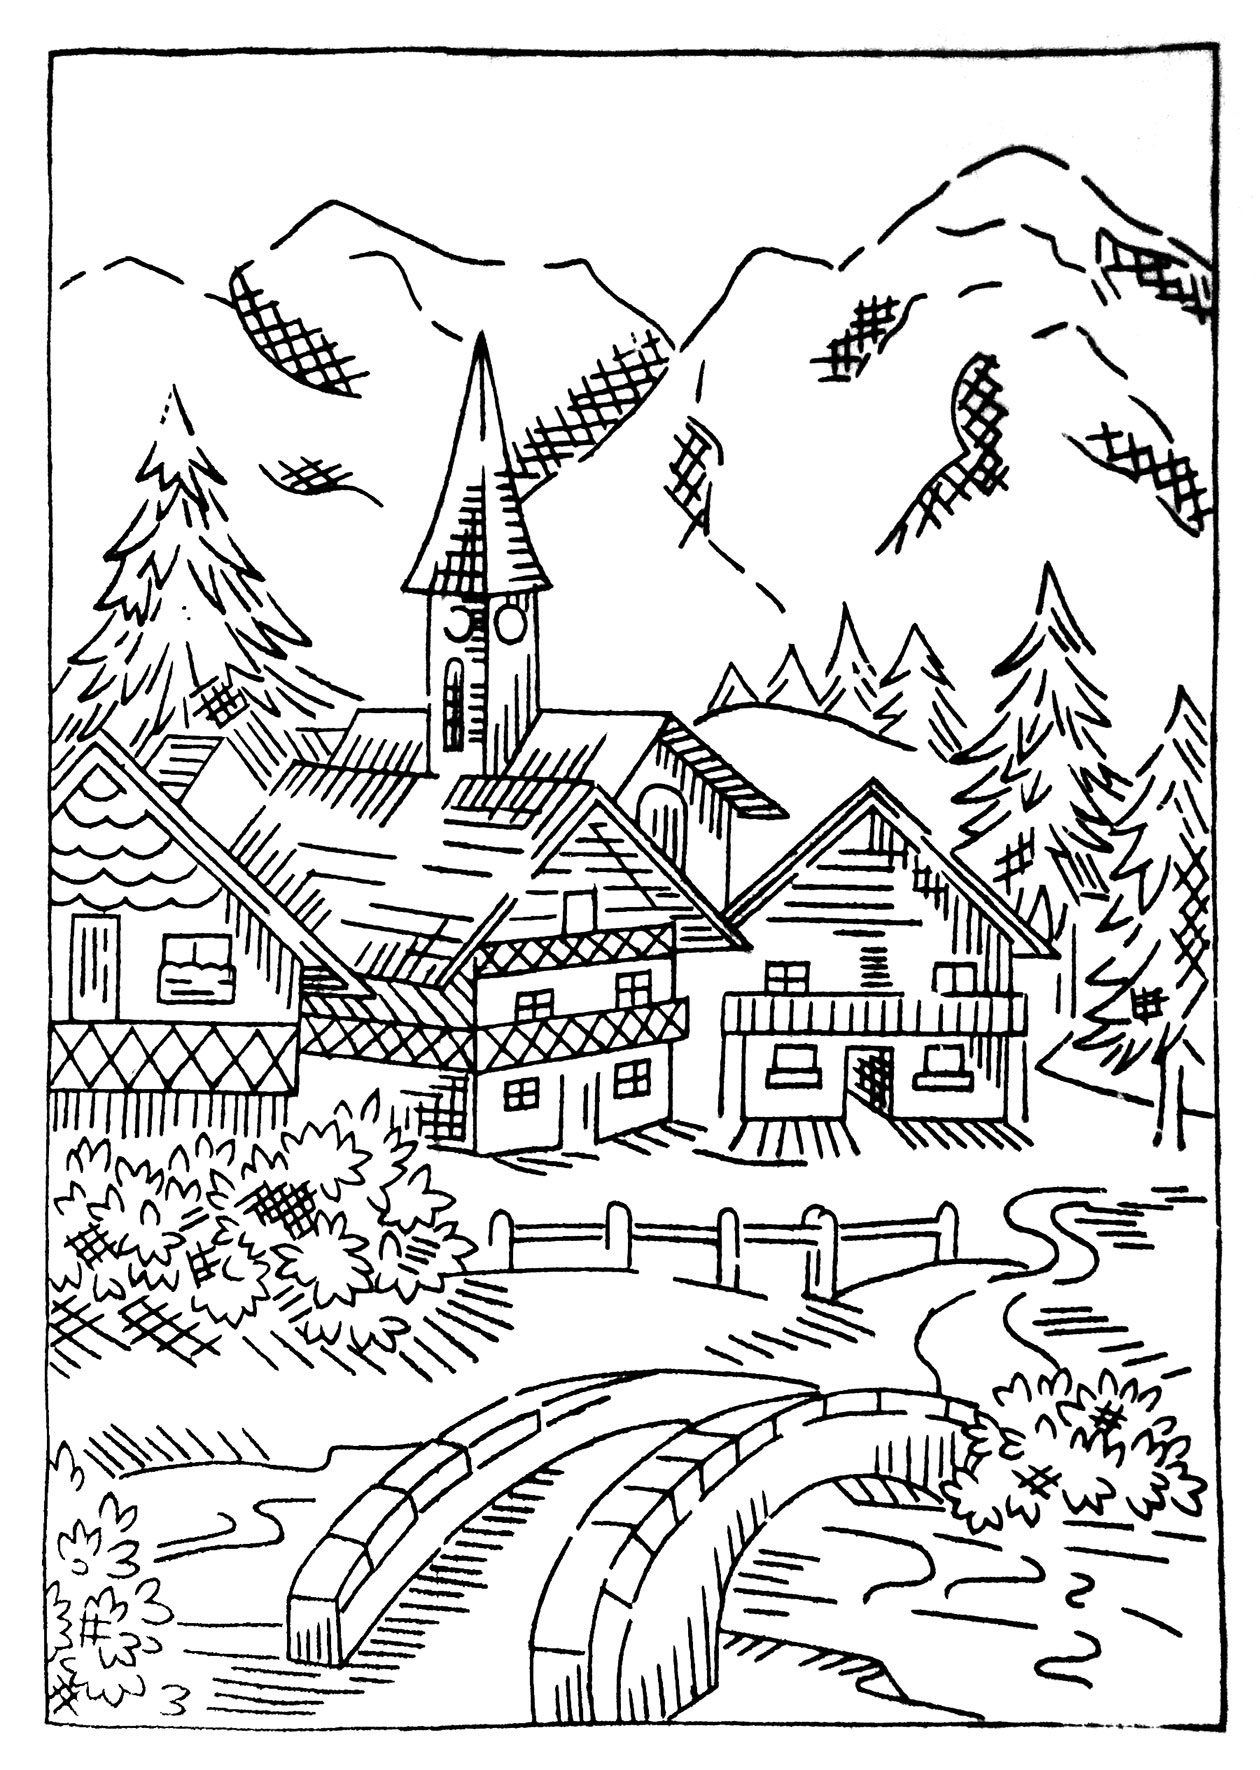 village colouring pages christmas village art to color coloring christmas pages village colouring